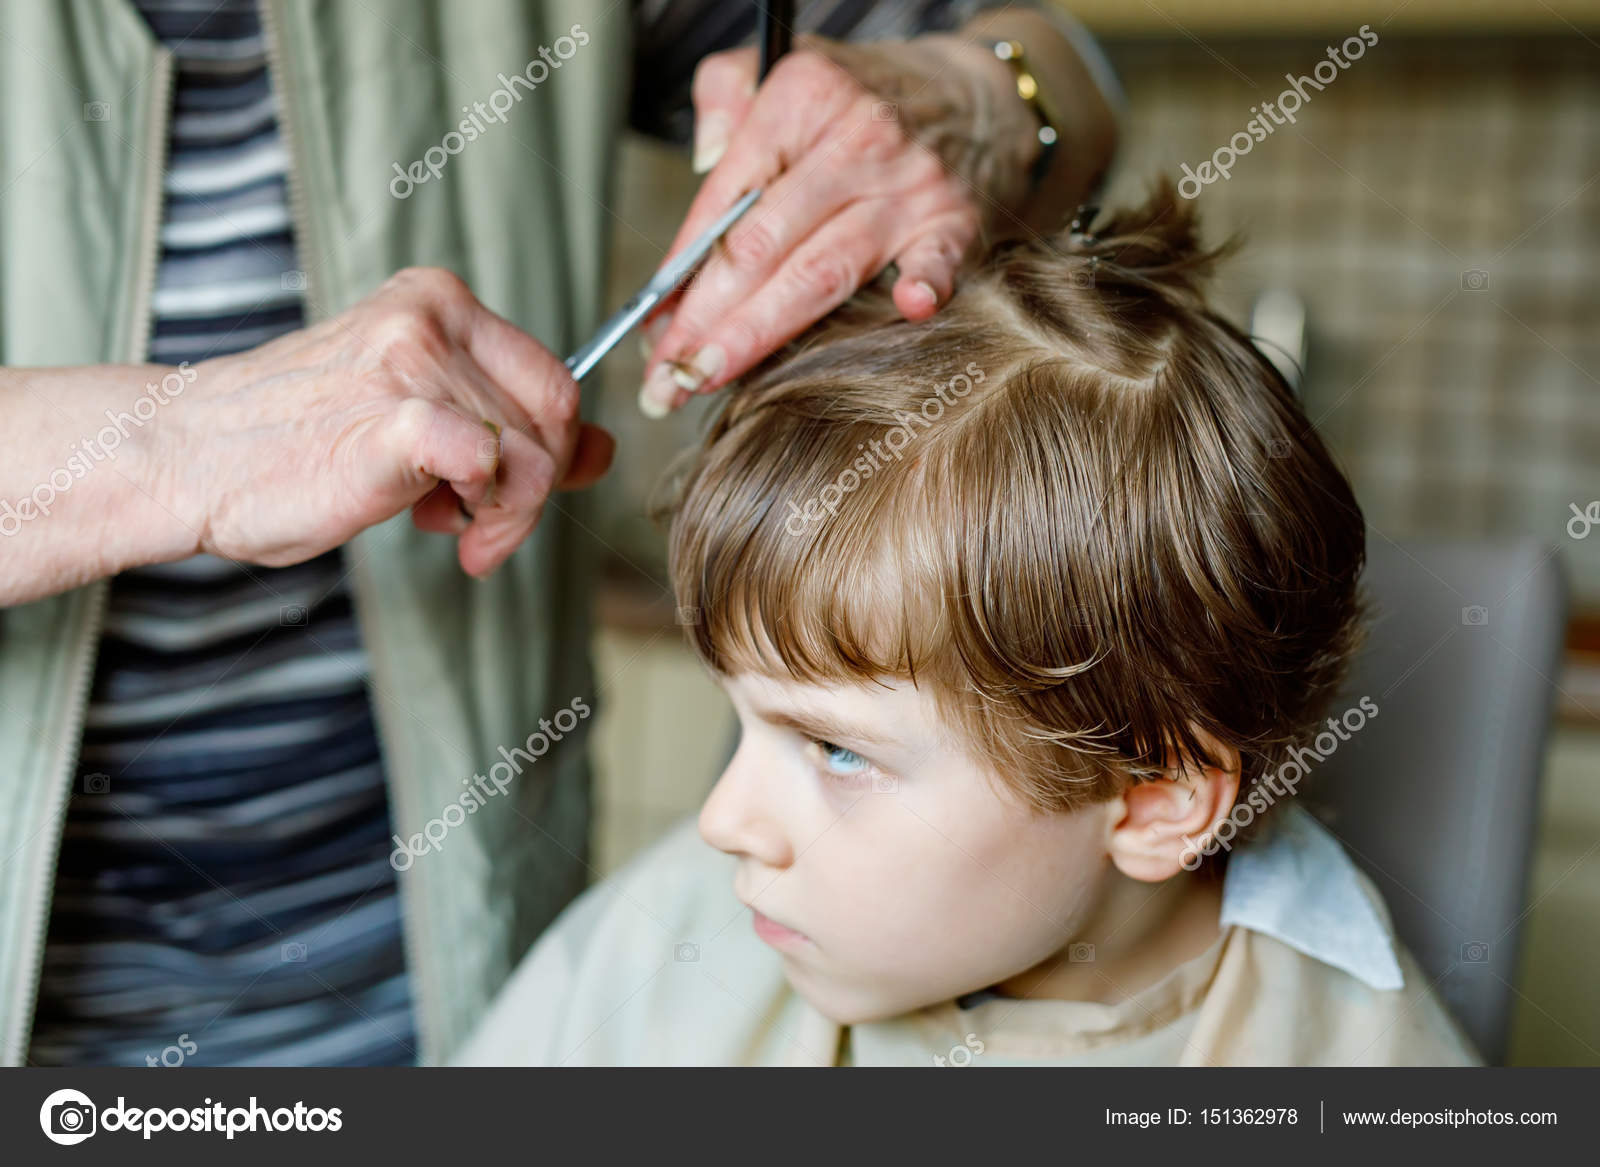 Beautiful Kid Boy With Blond Hairs Getting His First Haircut Hands Of Hair Stylist Cutting Curly Scissors Happy Child Sitting And Waiting